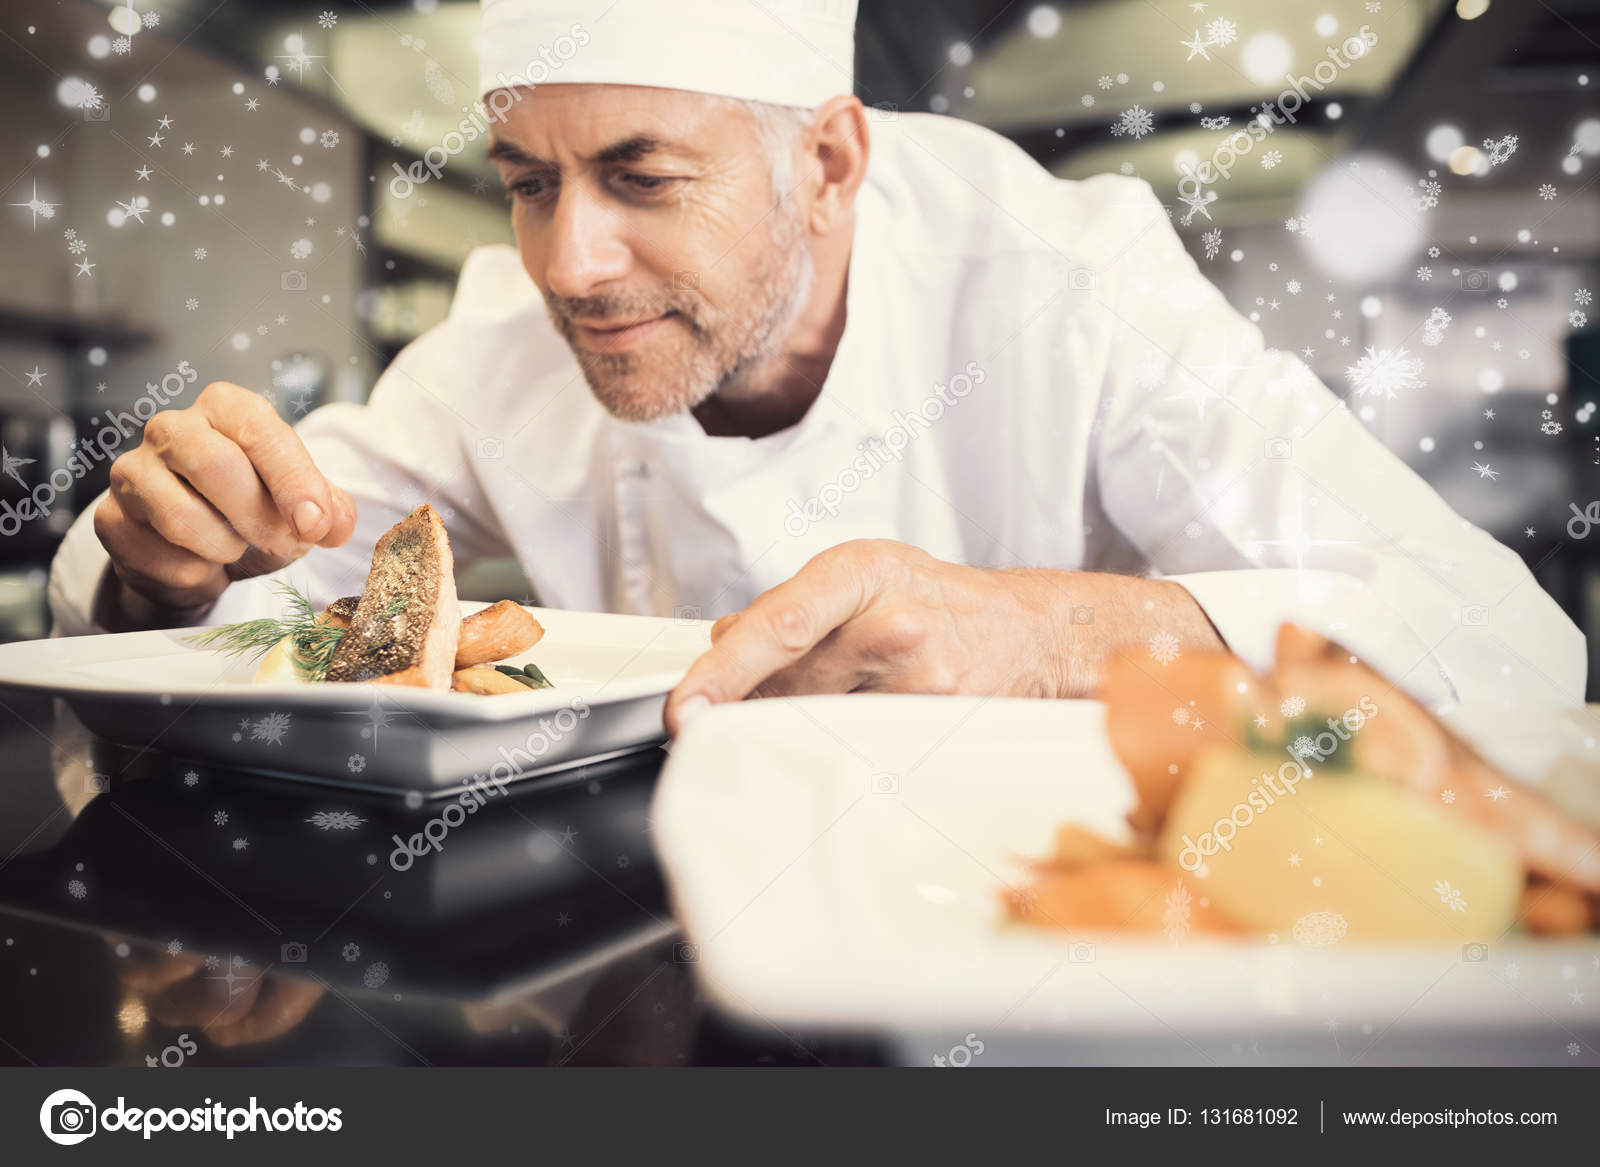 kitchen chef decor backsplash tile 男厨师装饰厨房里的食物 图库照片 c wavebreakmedia 131681092